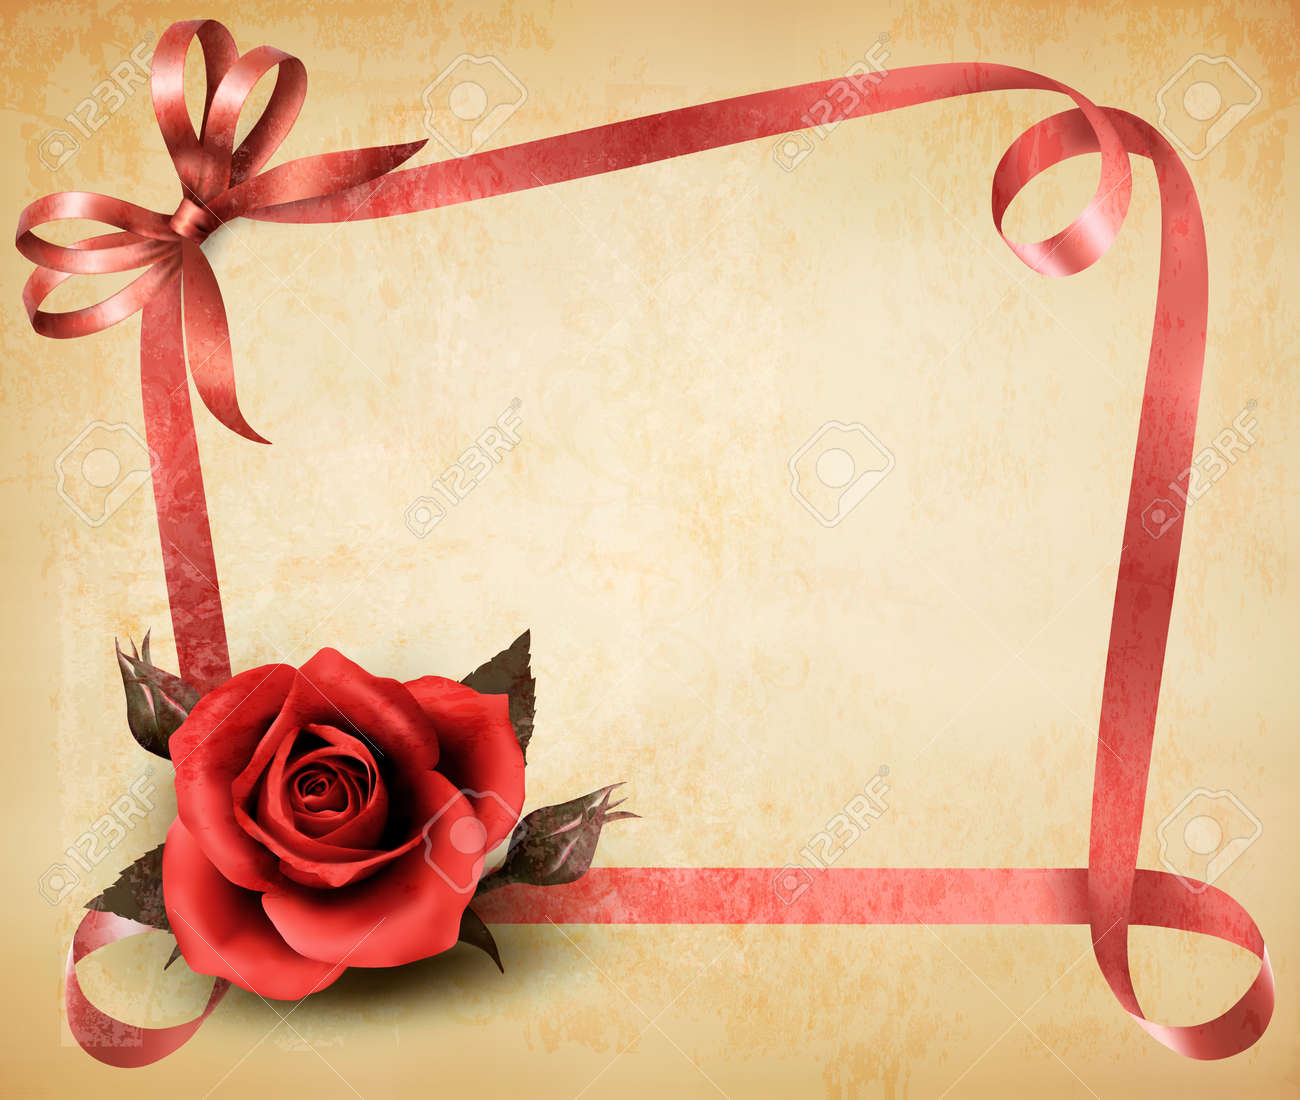 Retro holiday background with red rose and ribbons. Vector illustration. Stock Vector - 21643174